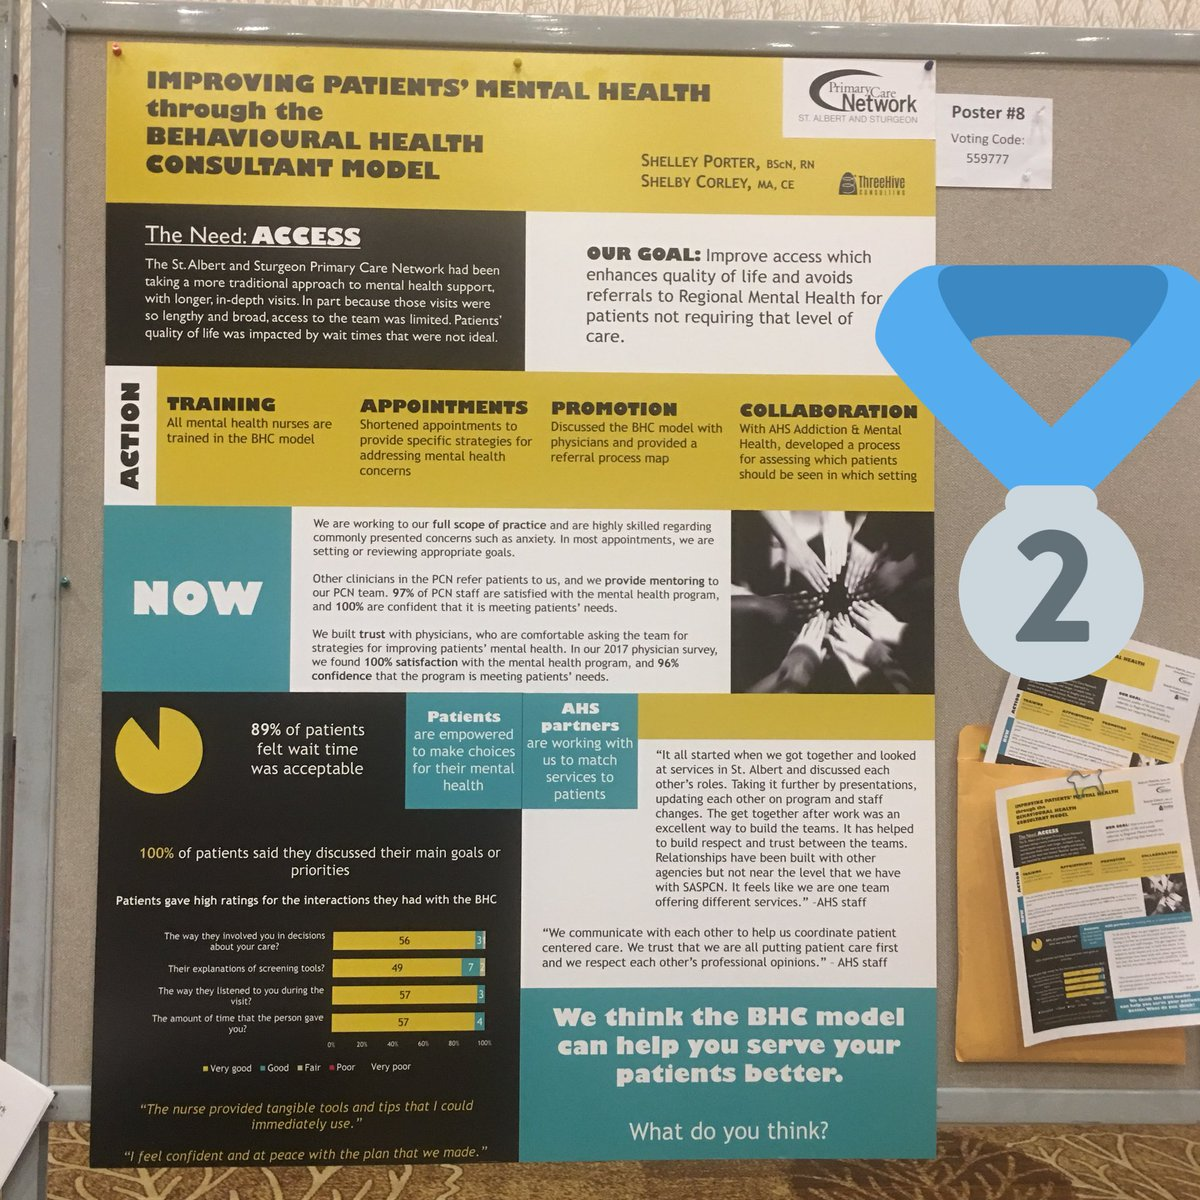 Three Hive Consulting On Twitter High Five To Saspcn For Winning Second Place At The 2017apcc Poster Competition Find Out More About Behavioural Health Consultation At Https T Co Aatemybpg2 Https T Co Qqtkakxii7